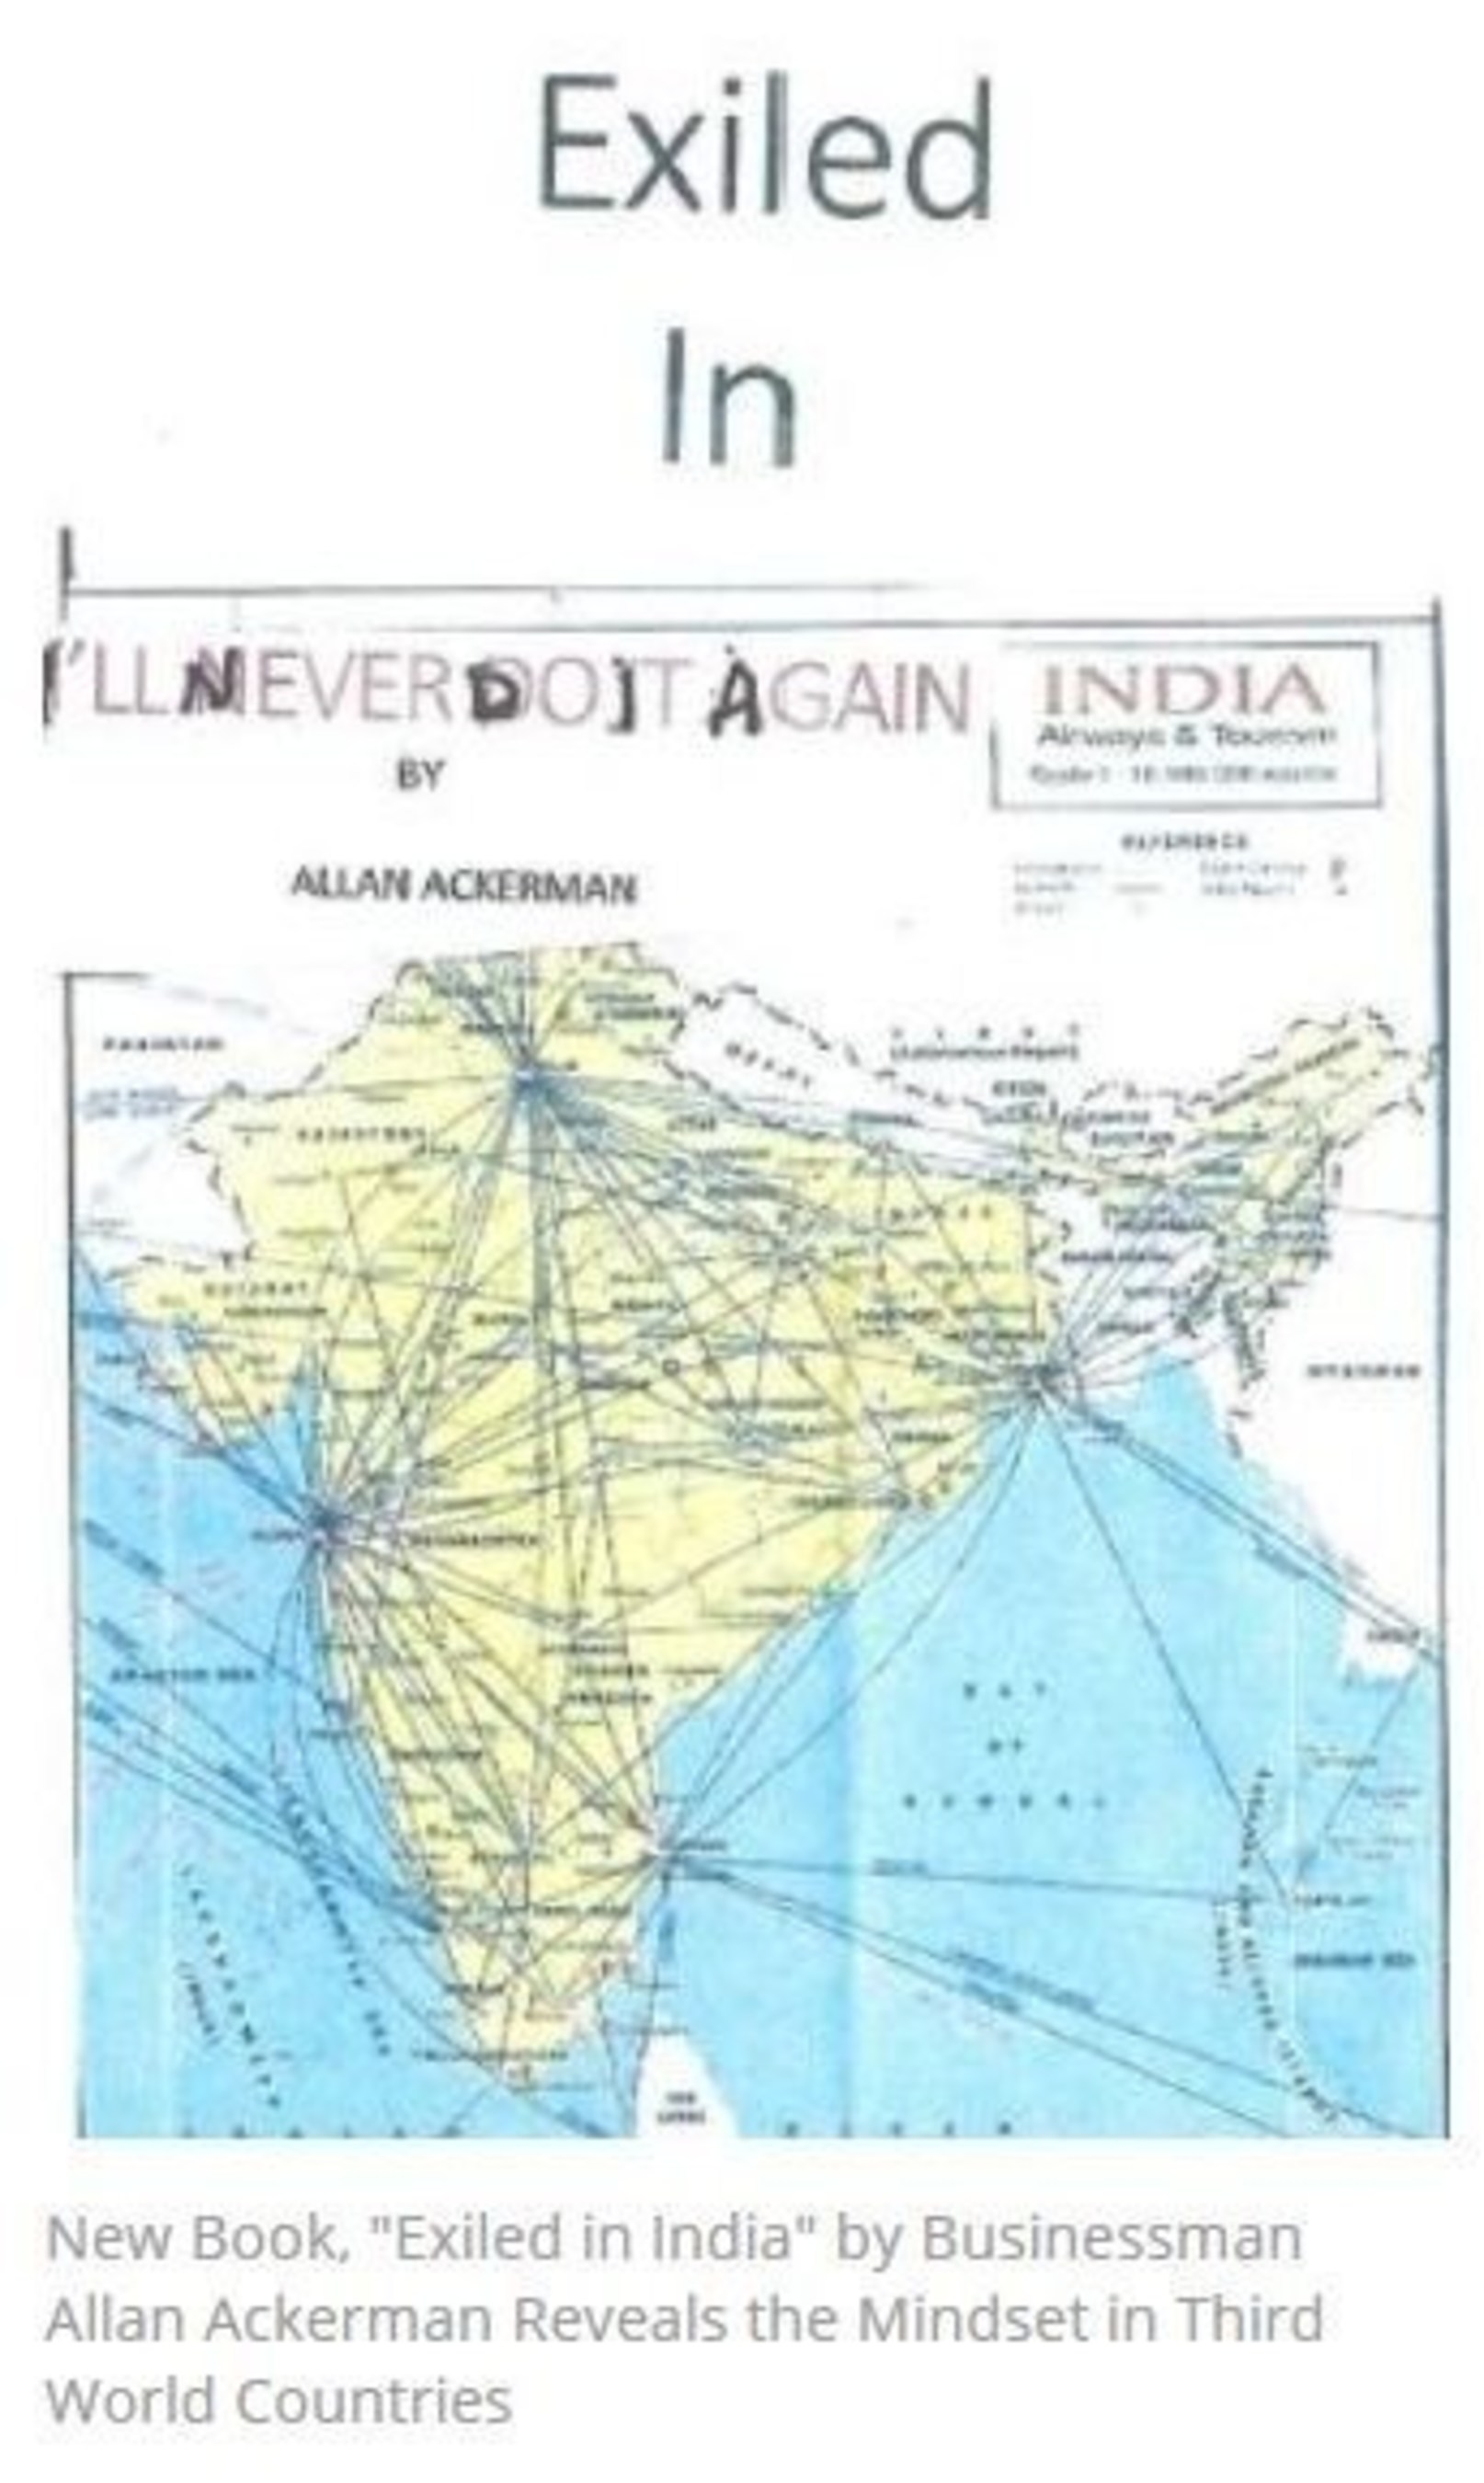 New Book, 'Exiled in India' by Businessman Allan Ackerman Reveals the Mindset in Third World